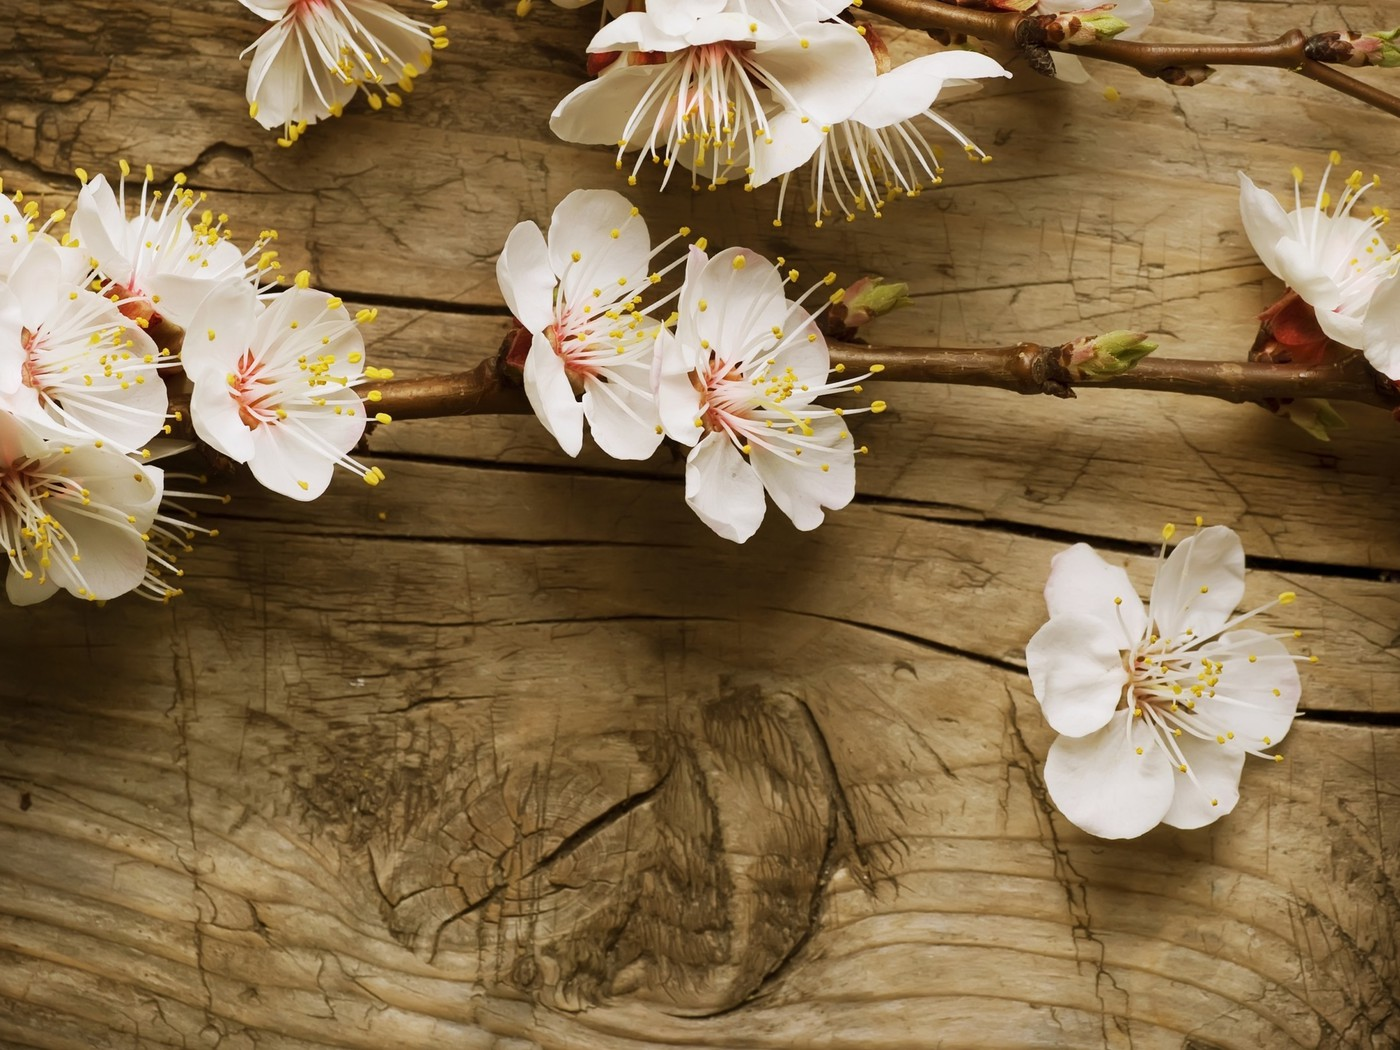 Iphone X Cherry Blossom Wallpaper Branch Of Cherry Blossom Wallpaper Allwallpaper In 5695